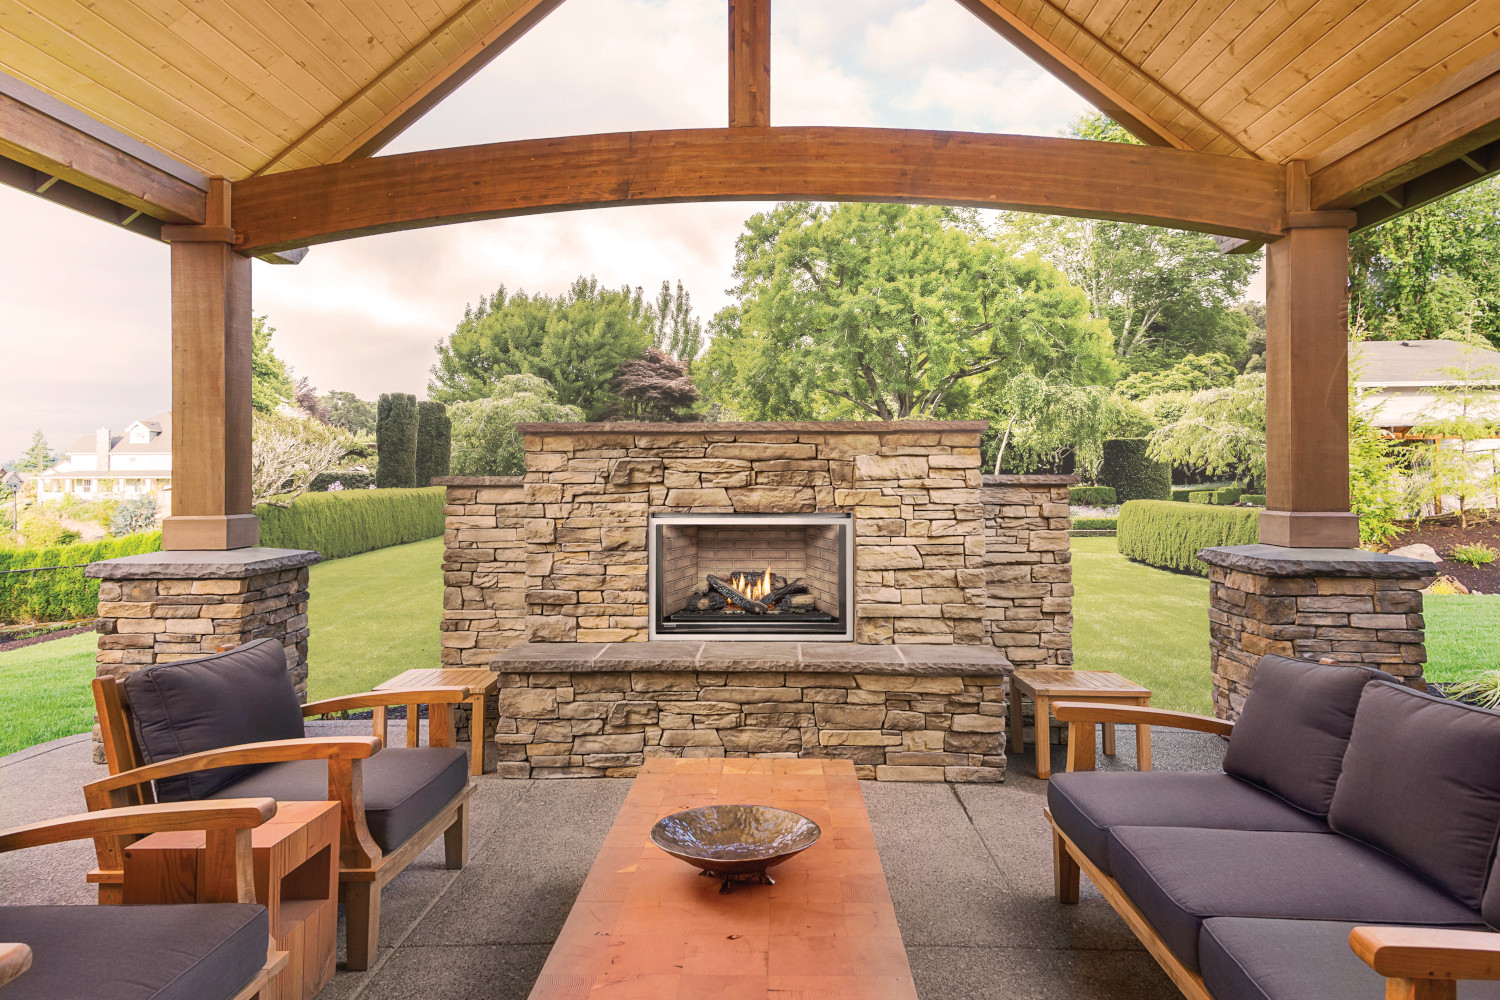 Outdoor Wood Burning Fireplace | Embers Outdoor Kitchen ... on Embers Fireplaces & Outdoor Living id=78404